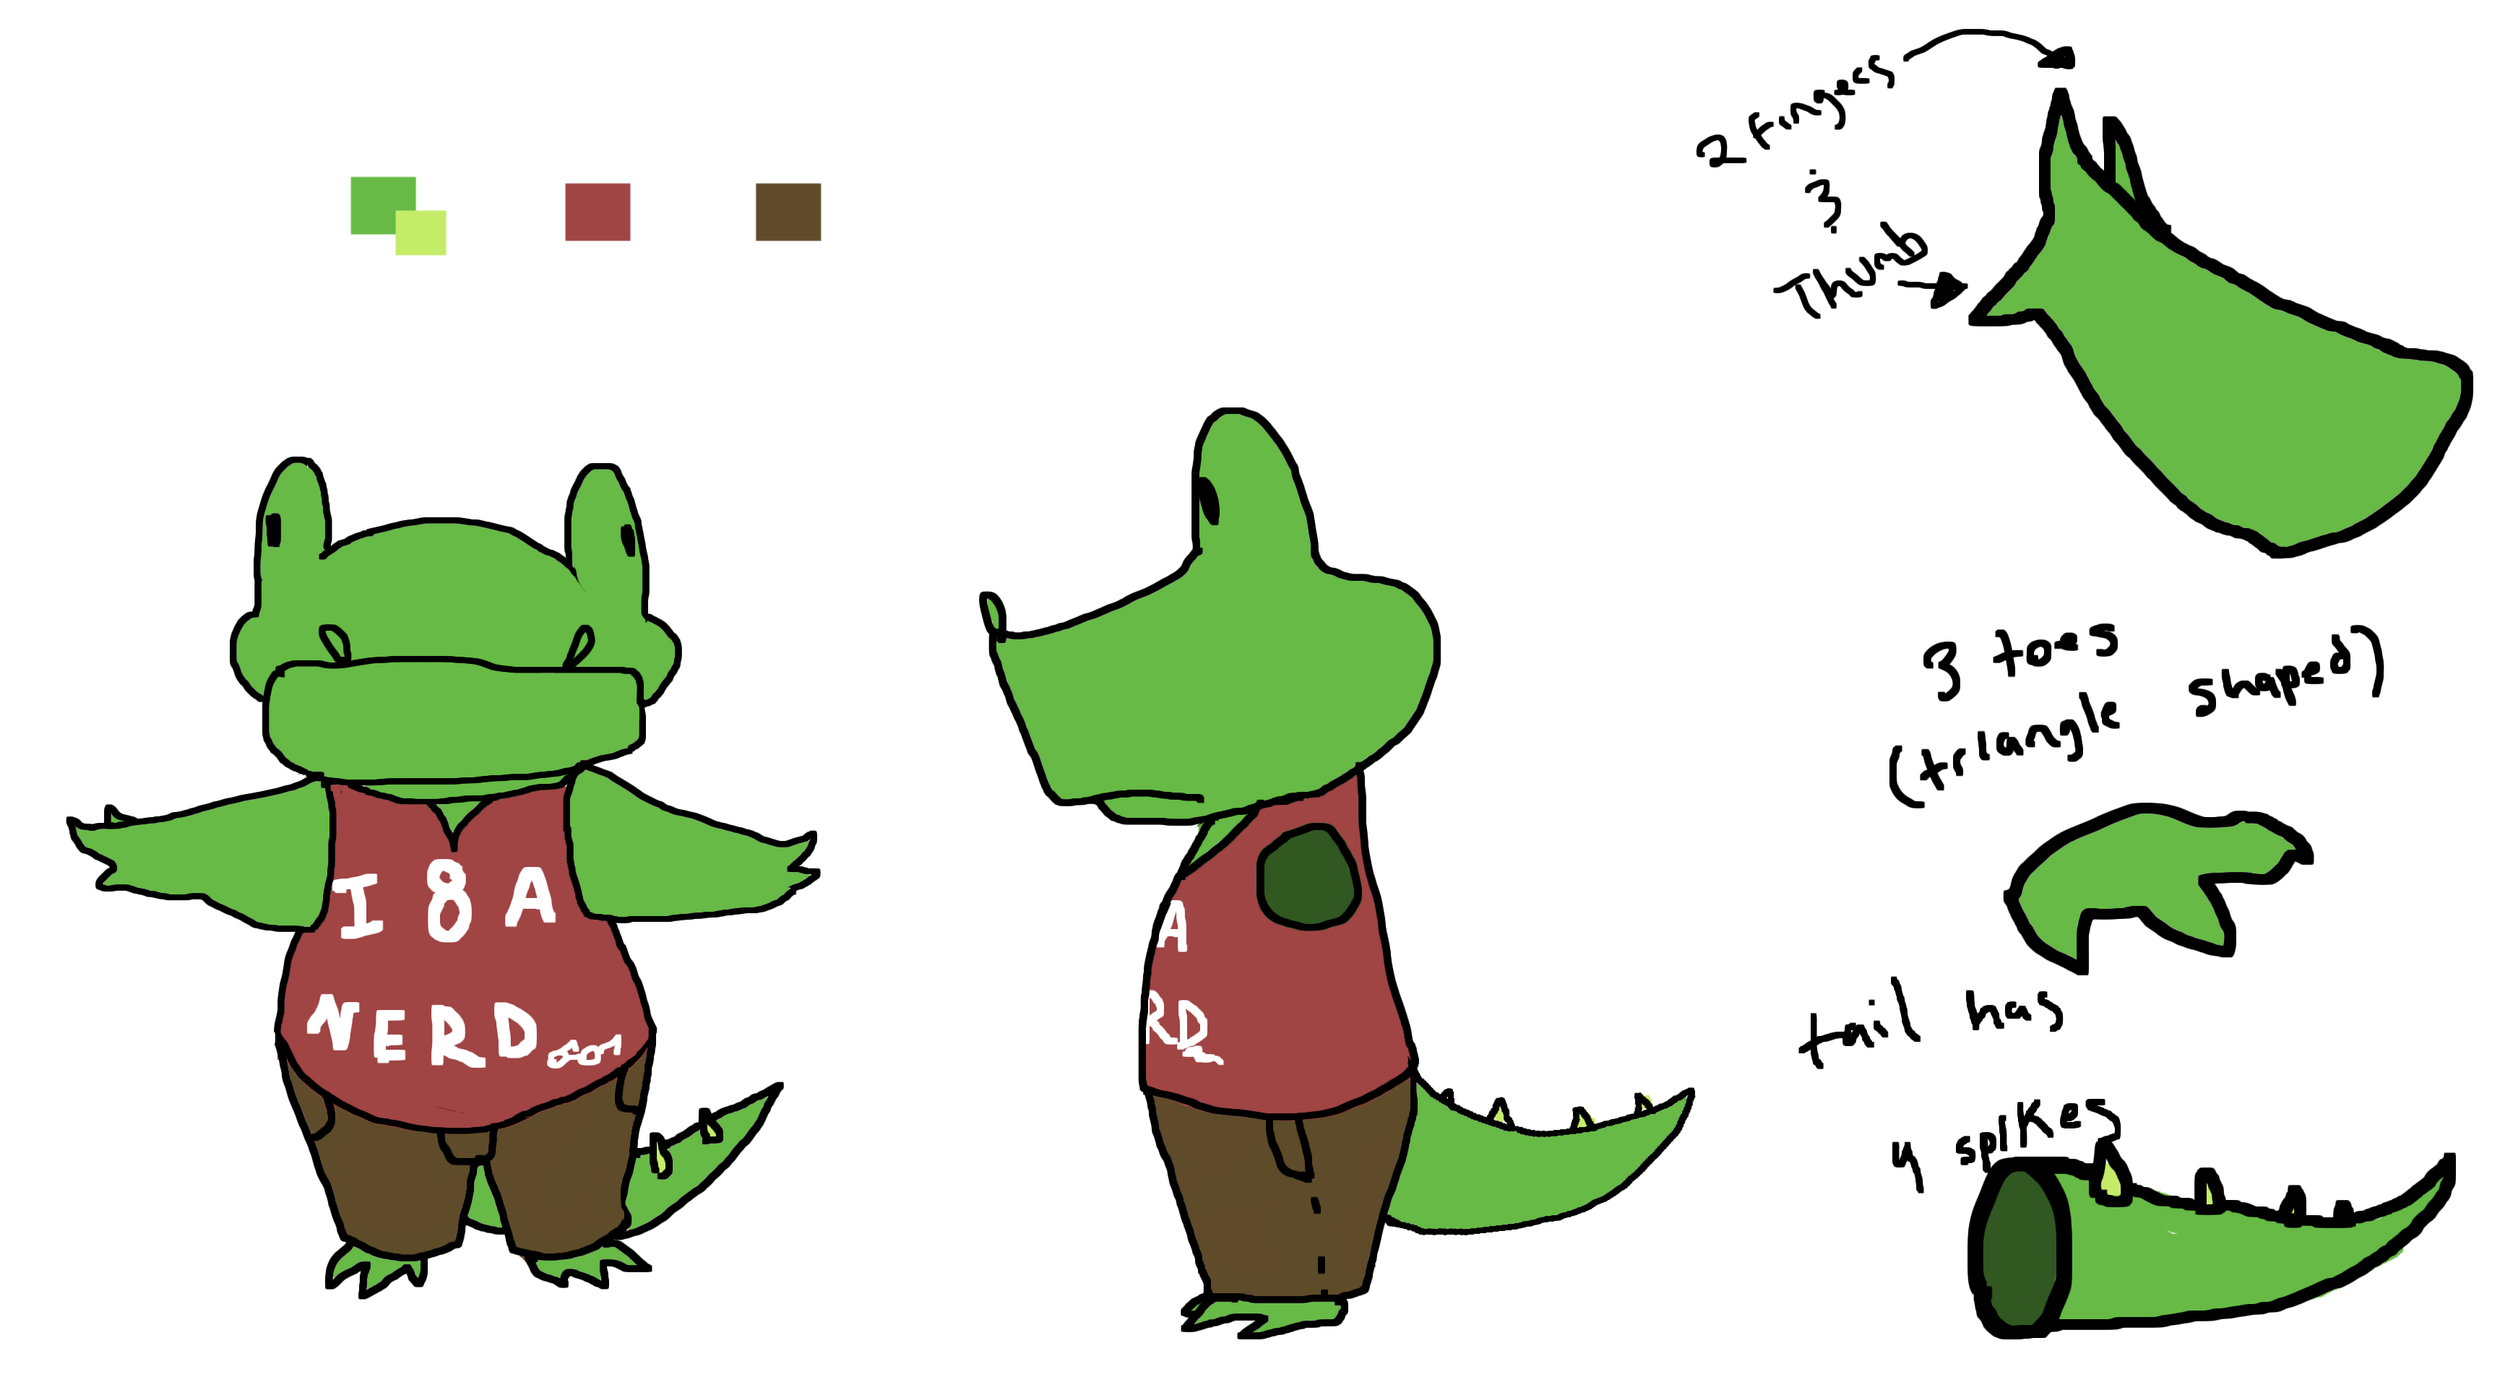 Added some color to the design. At first he was an Alligator so I started with green. Also I felt the salmon colored shirt kind of hints to the fact he's not as tough as he seems (or you know only tough guys wear pink, right?)